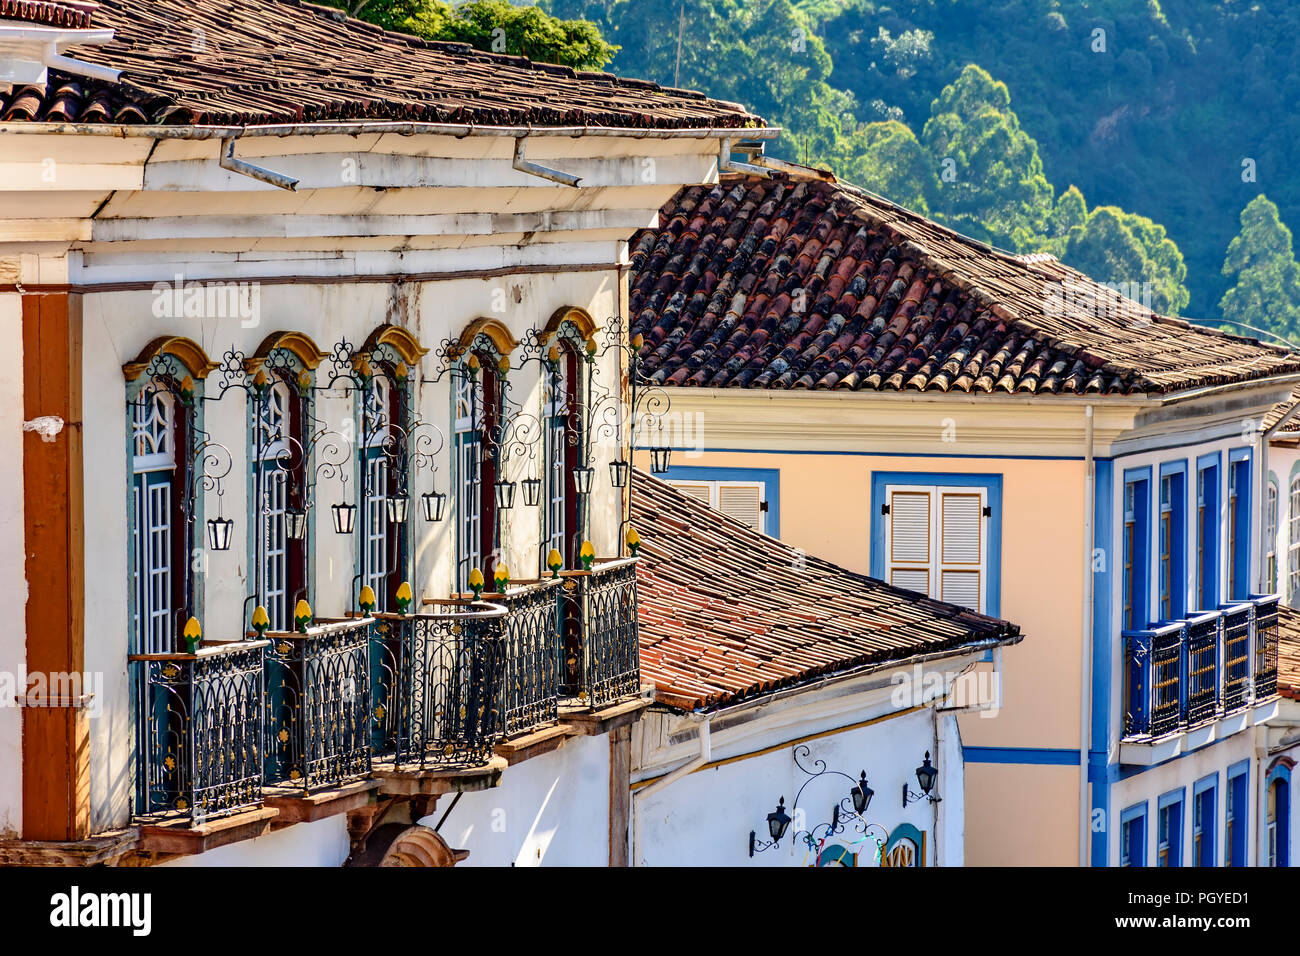 Facade of old and historical houses built in colonial architecture with their balconies, roofs and colorful details in the historical city of Ouro Pre - Stock Image